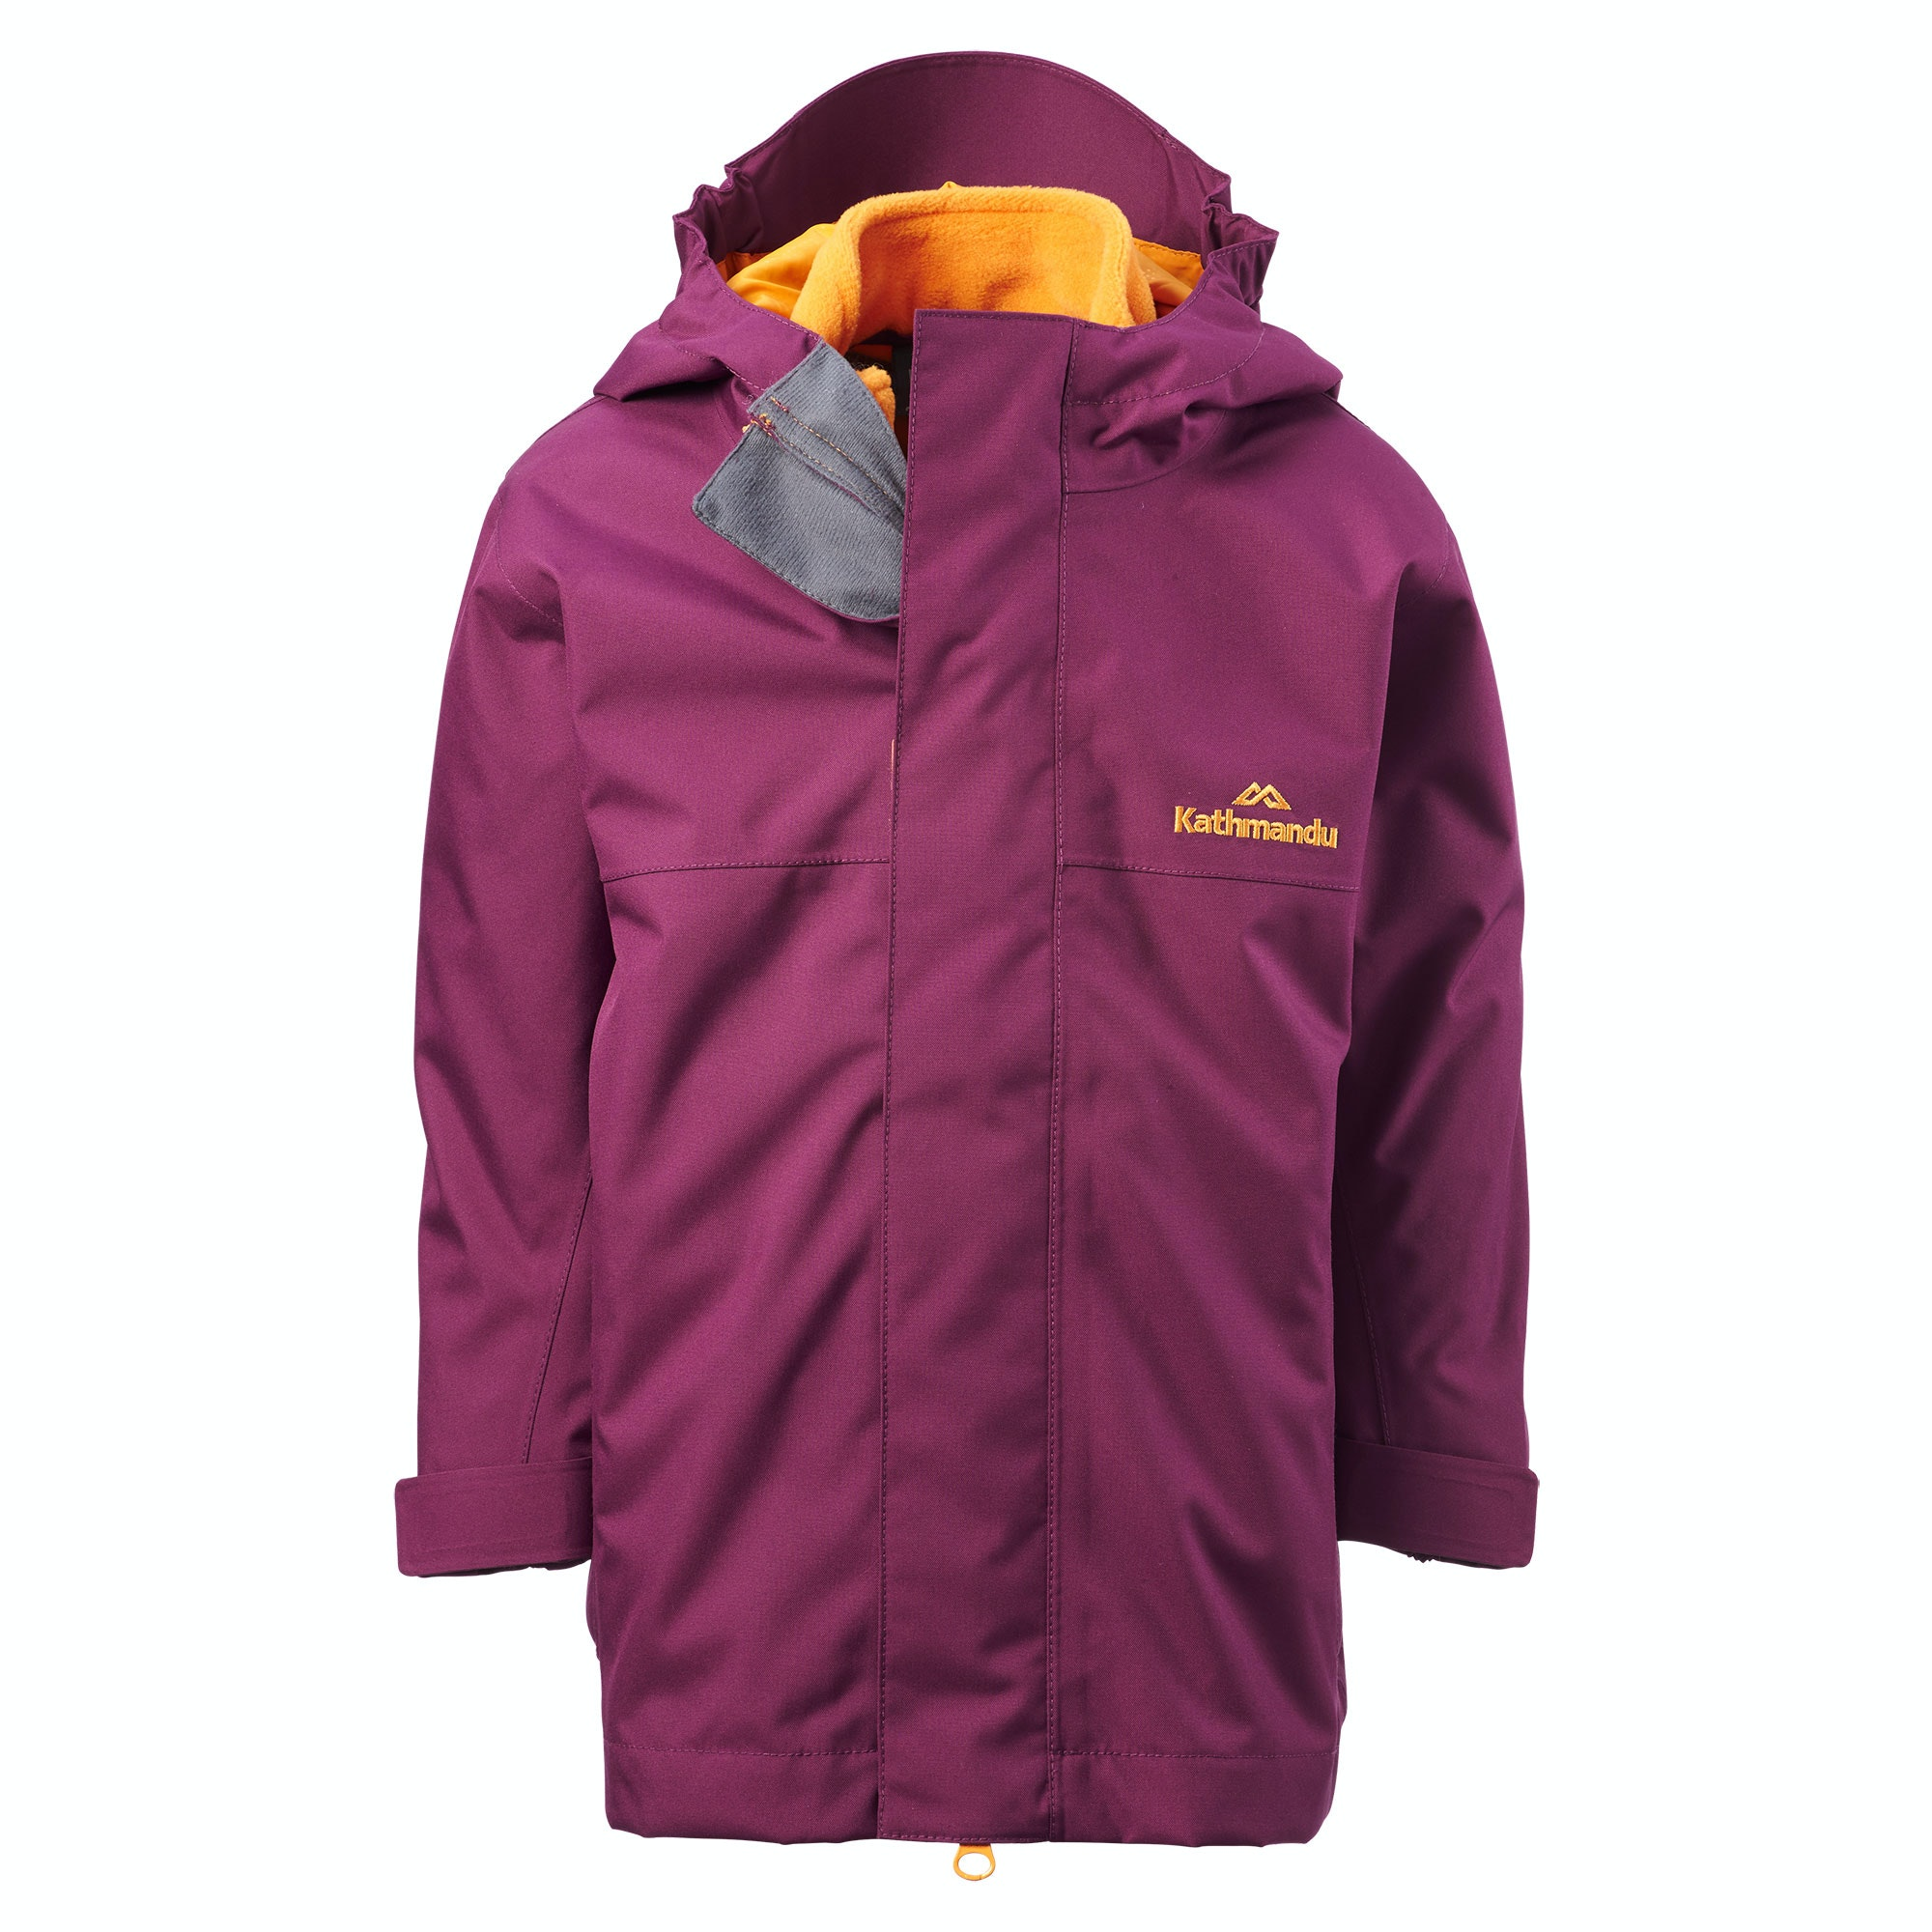 View more of the Chiecco Kid's 3 in 1 Rain Jacket v2